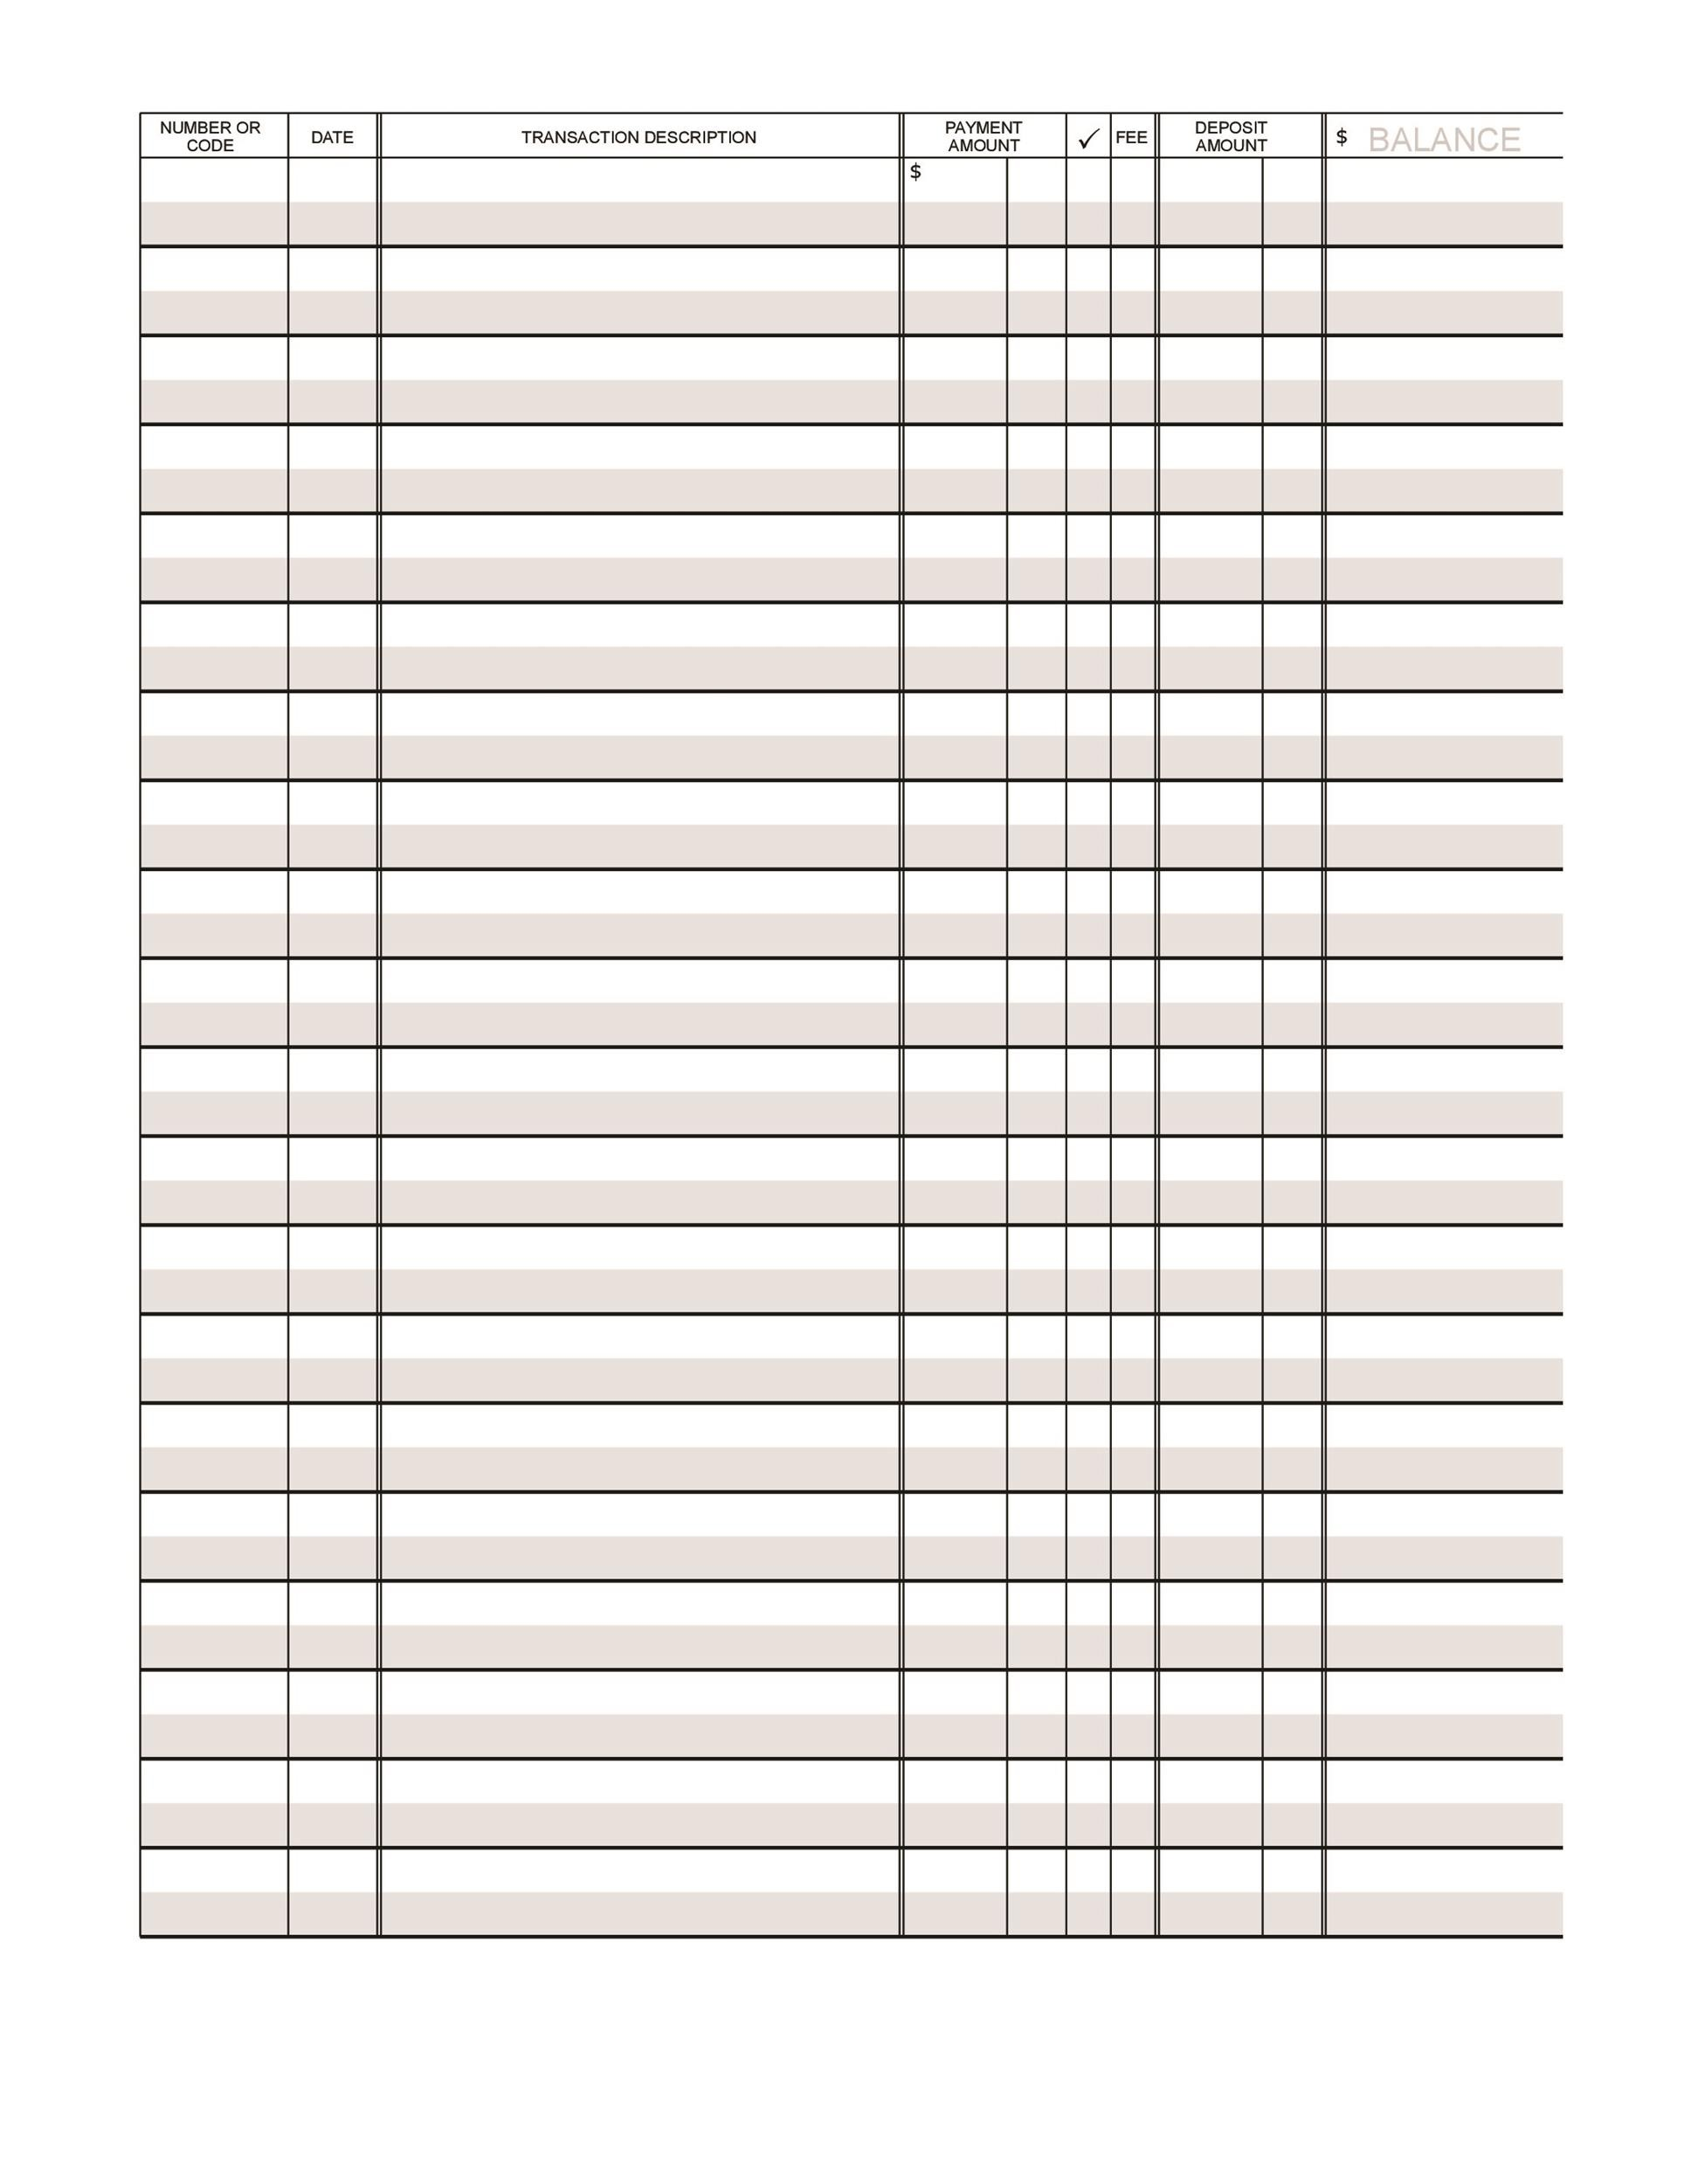 37 Checkbook Register Templates [100% Free, Printable]   Template Lab